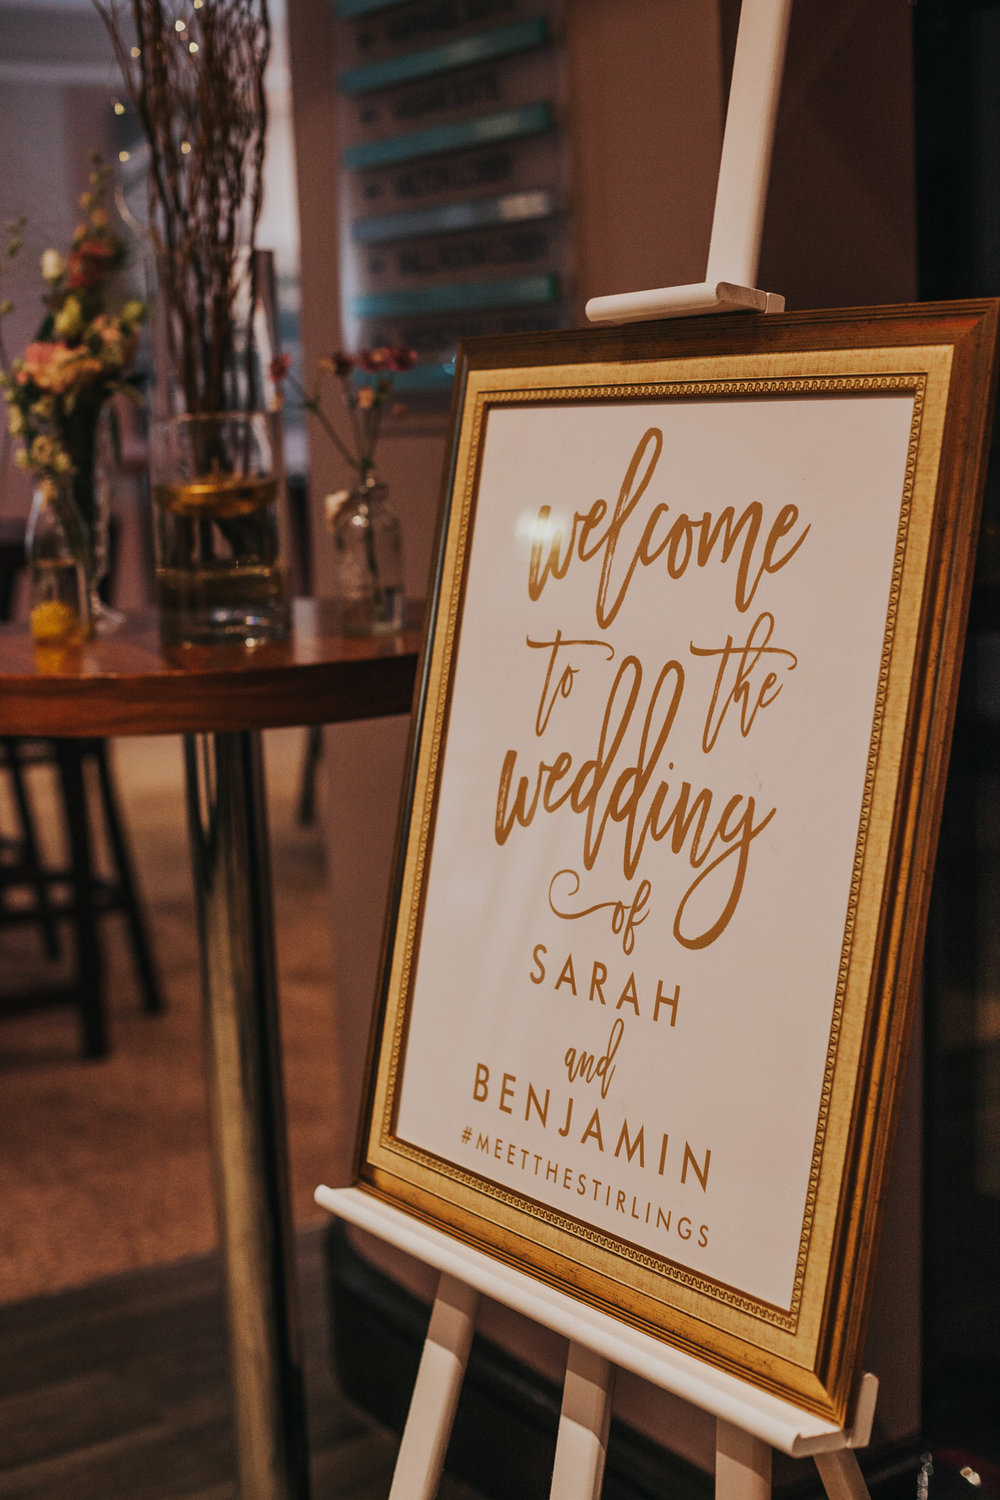 Welcome to the wedding sign.